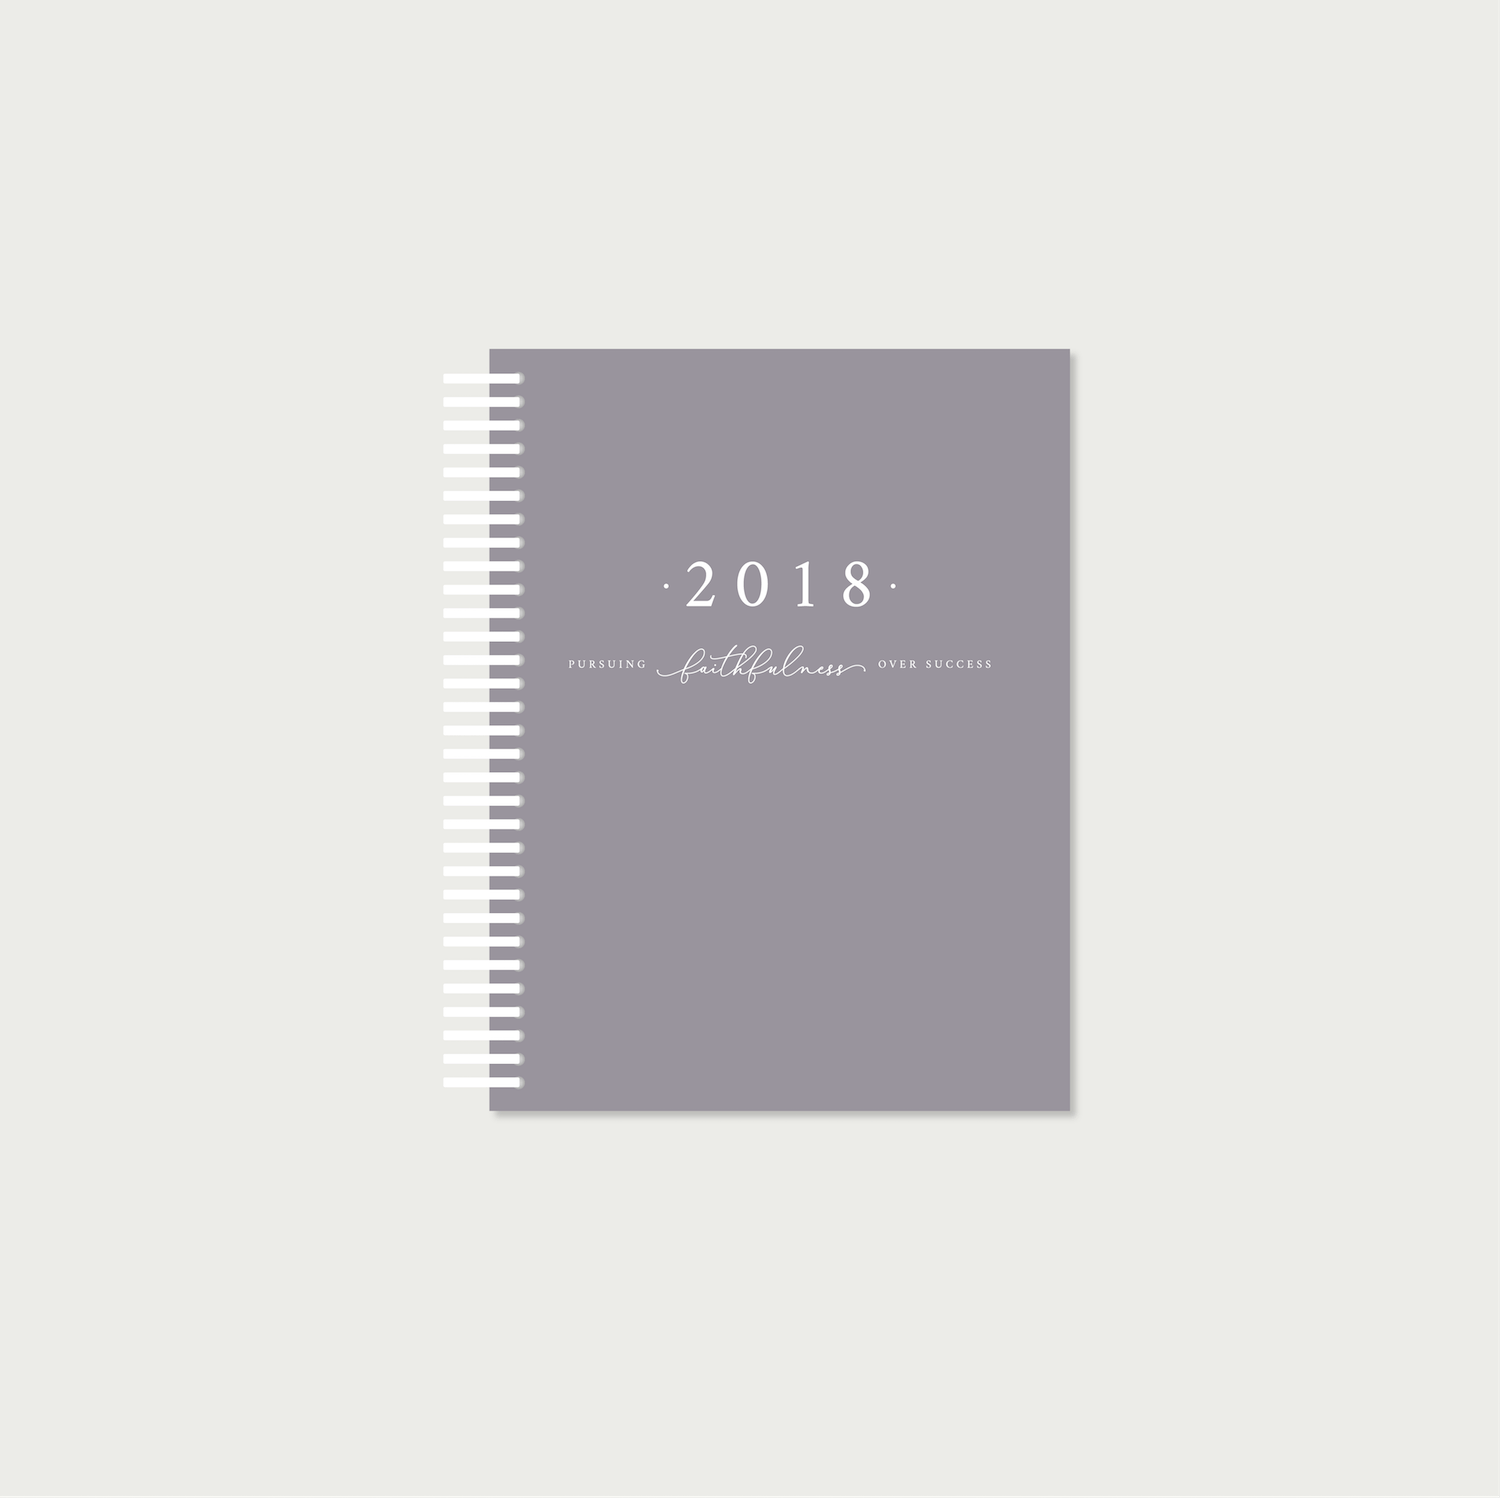 Faithful Life Planner cover mockup of the PLUM